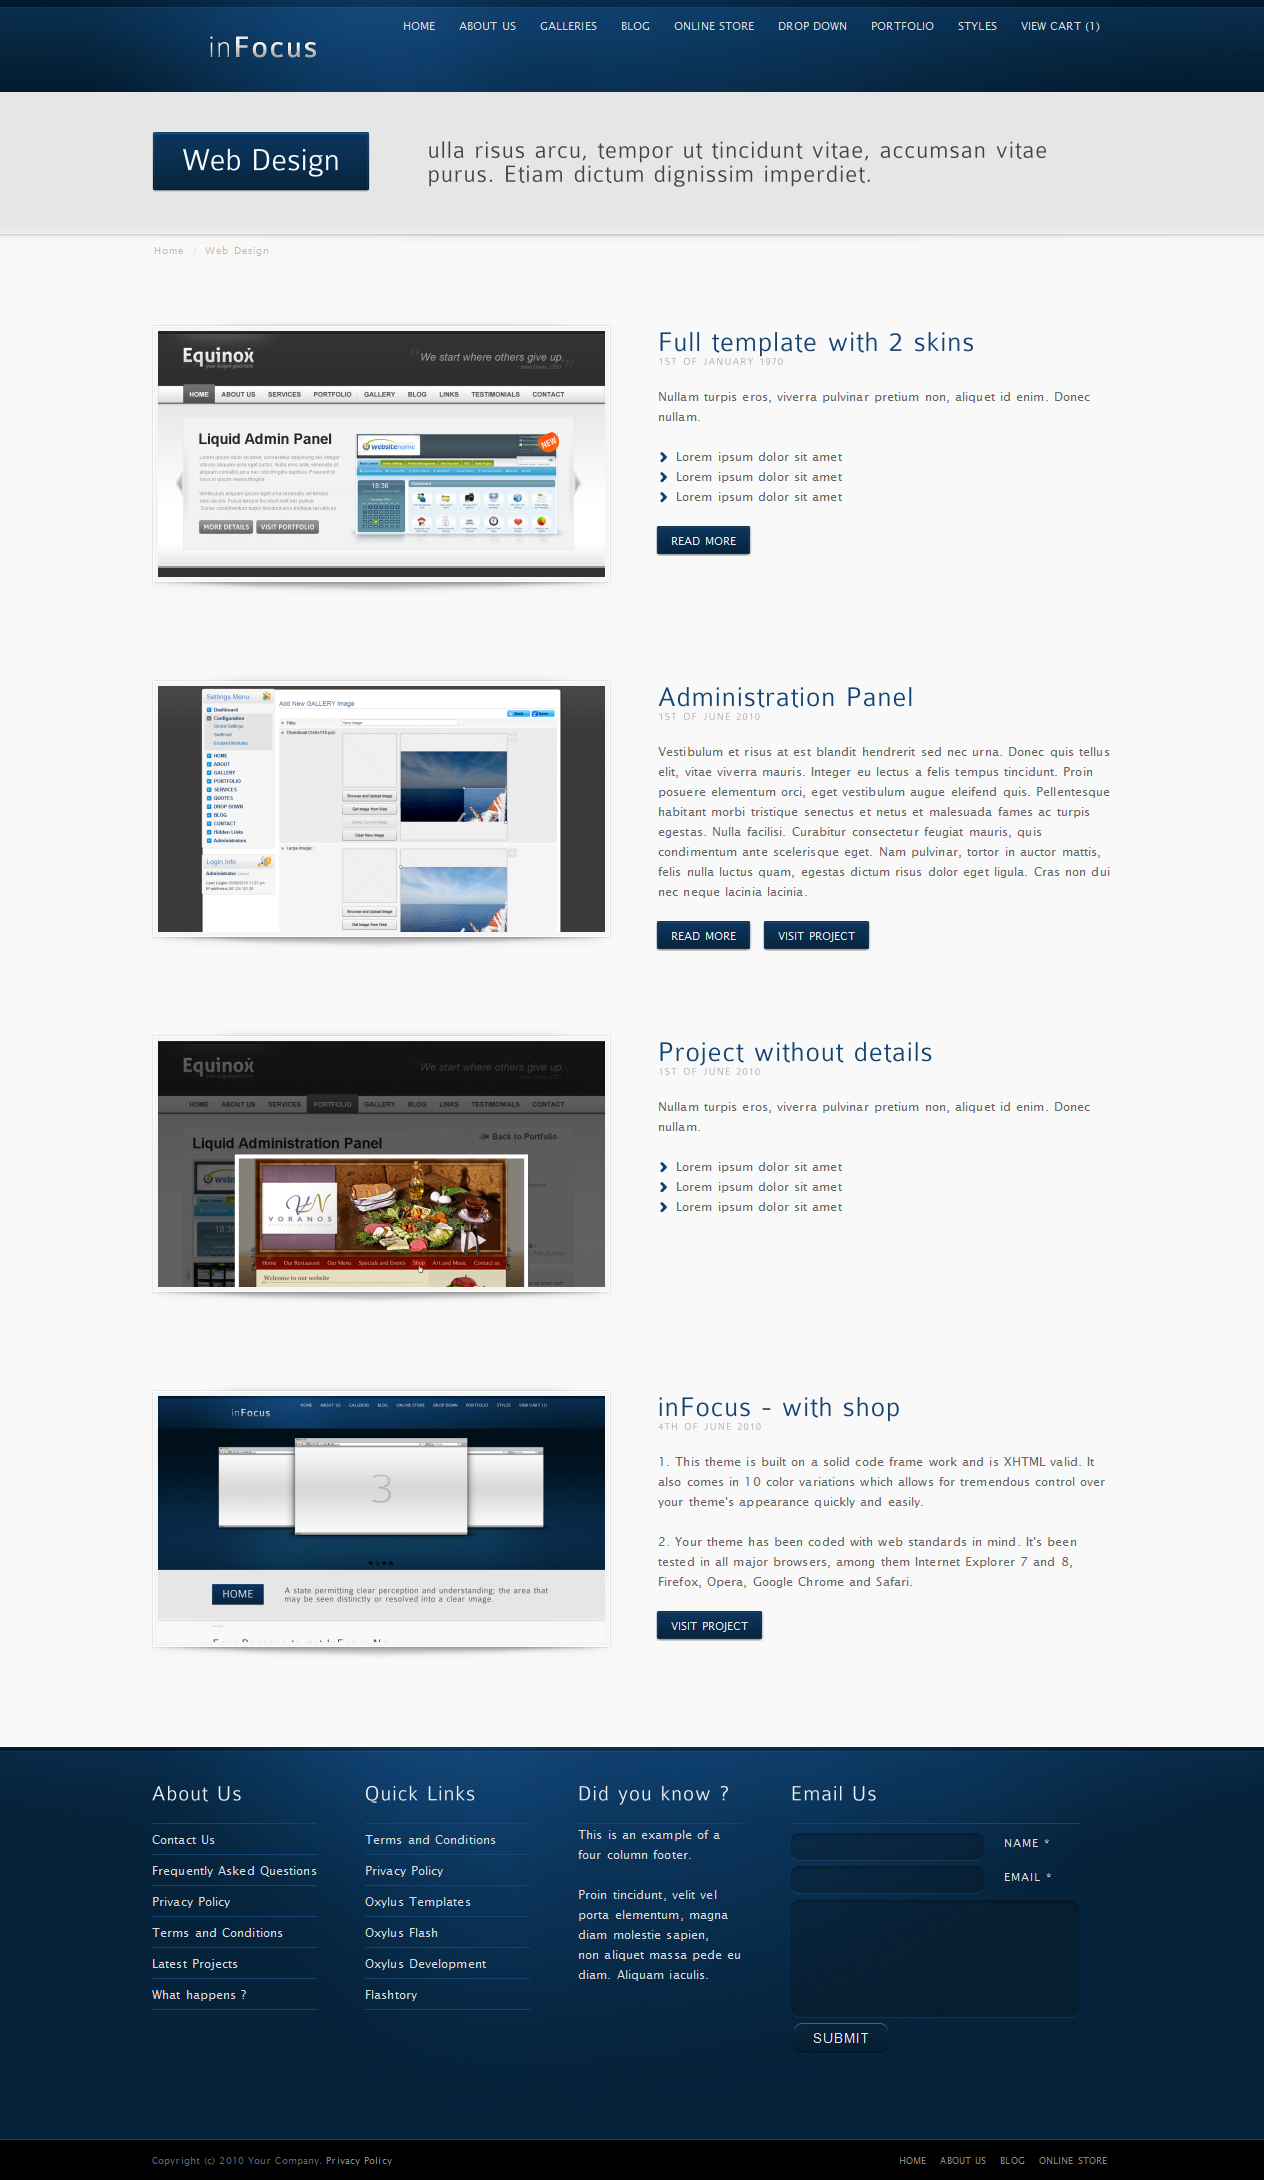 inFocus - Powerful Professional Template w/ E-Shop